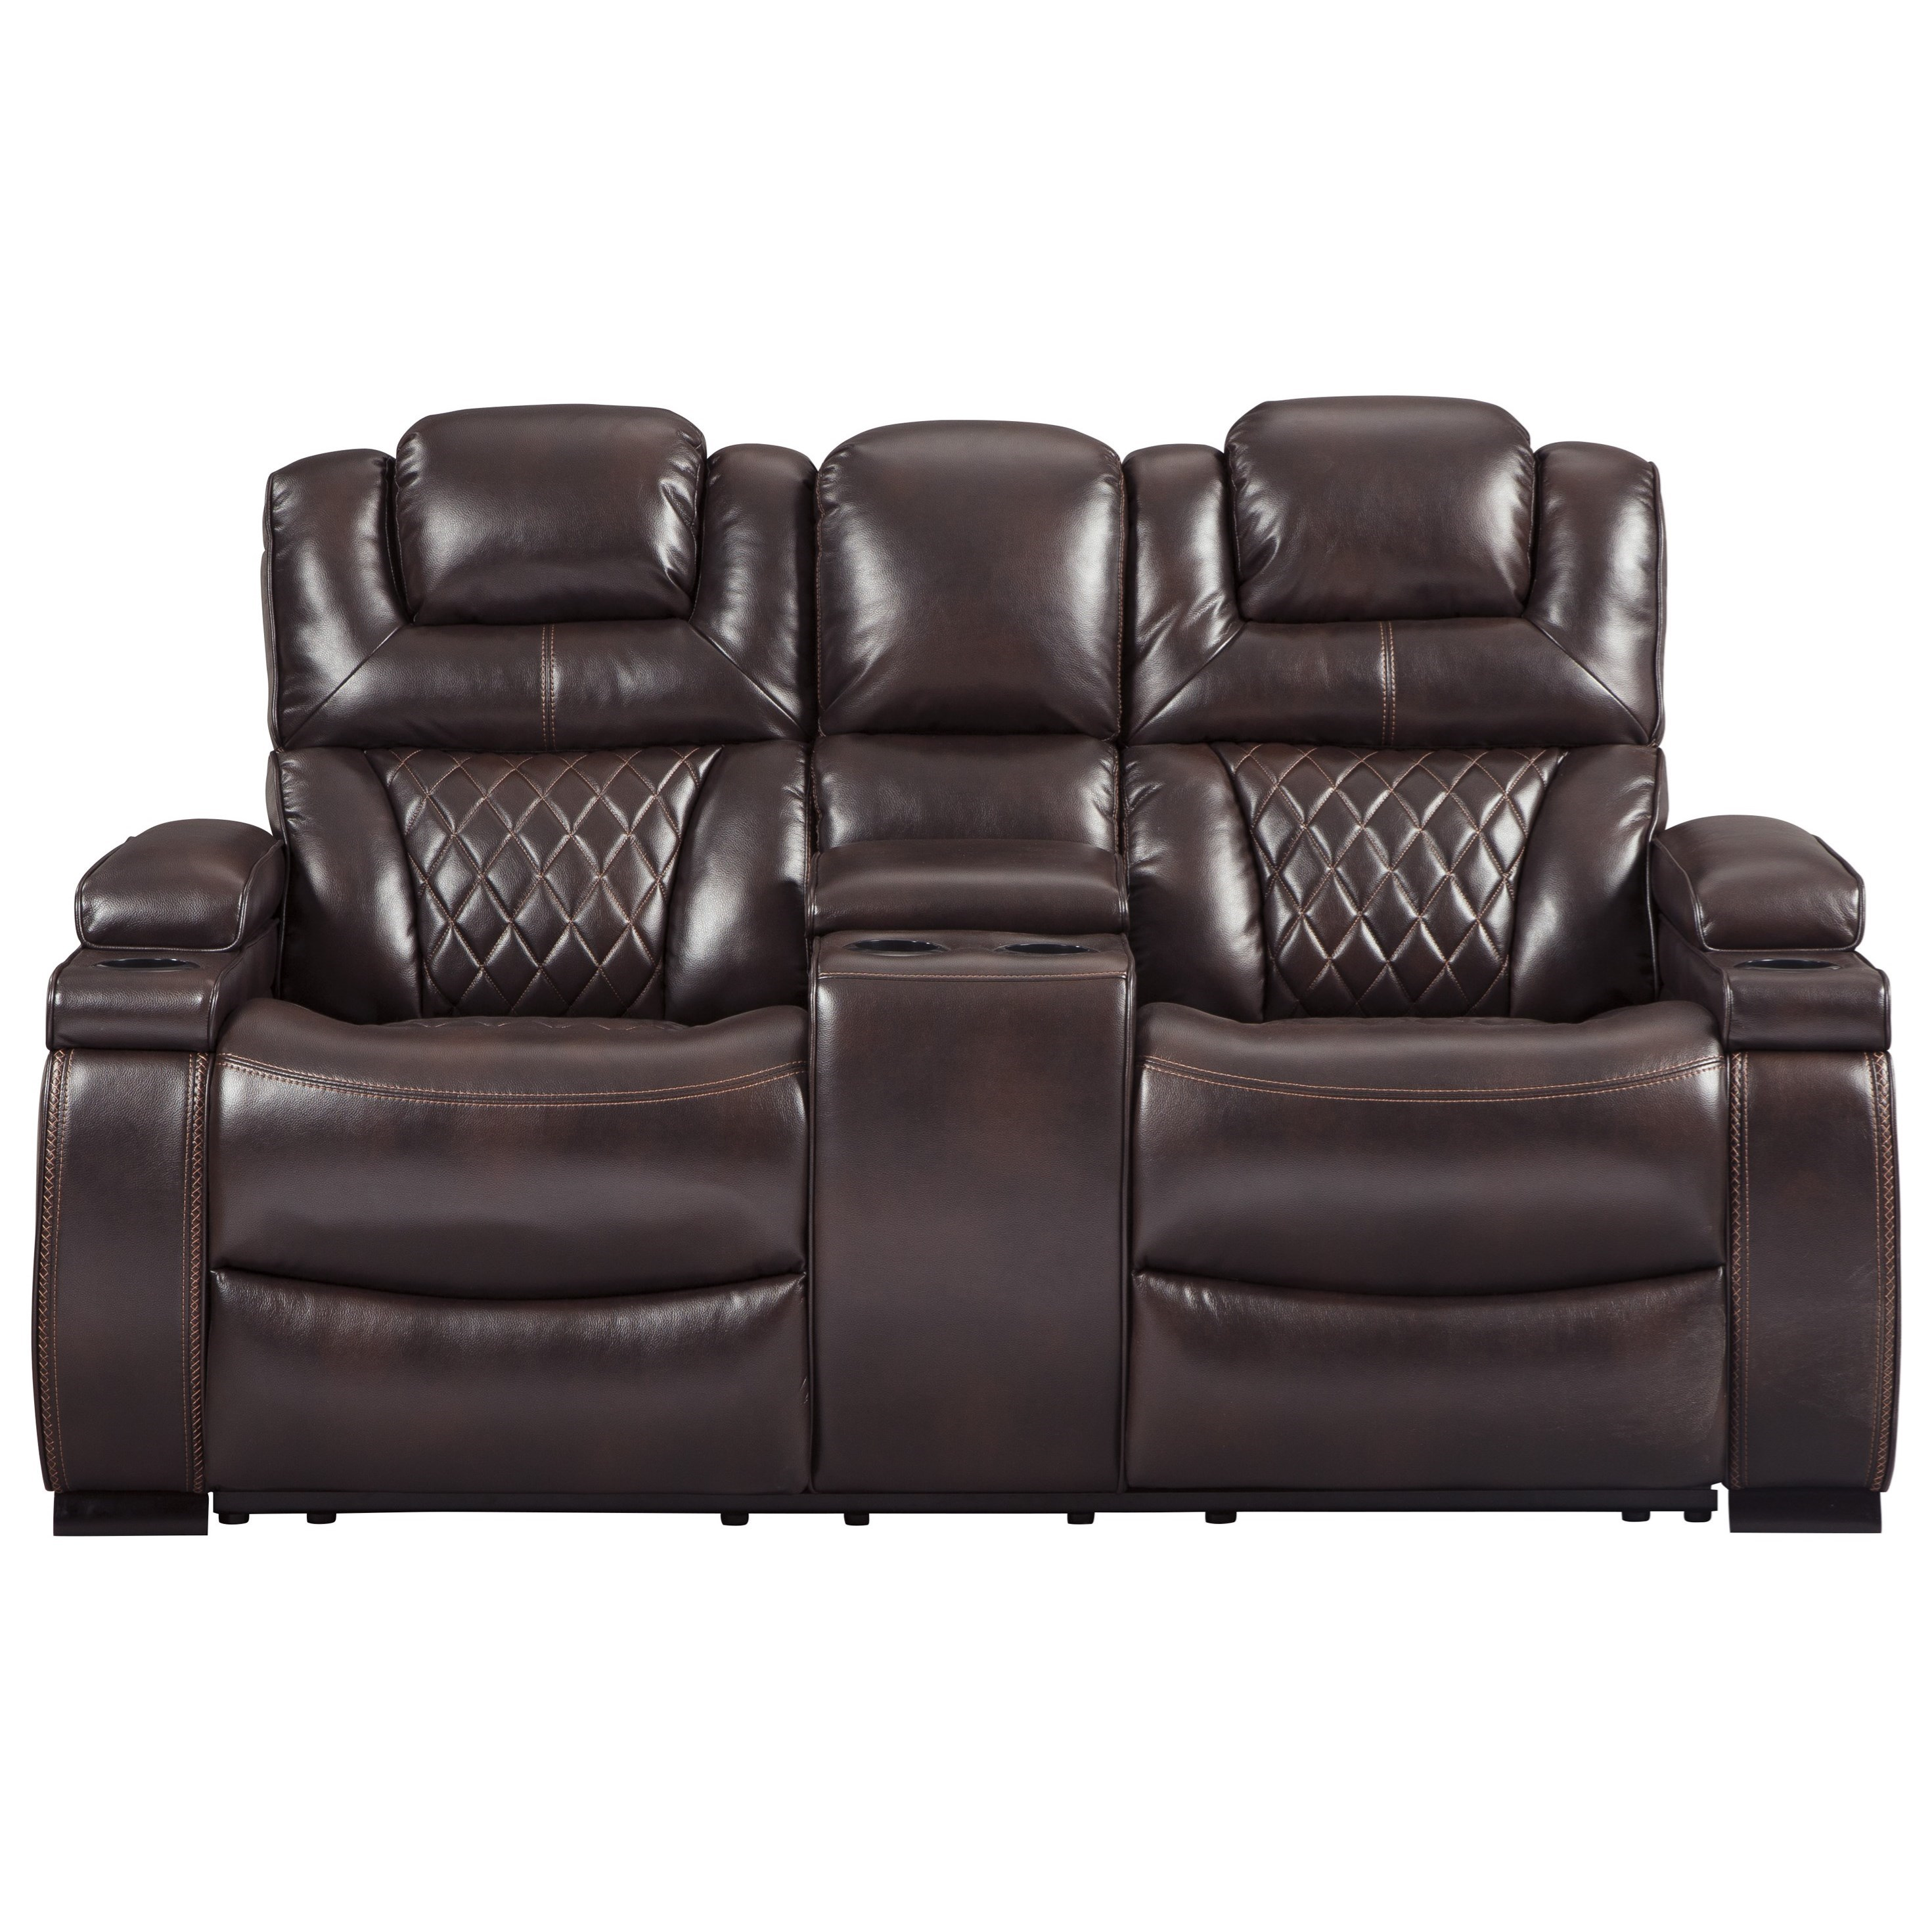 Warnerton Power Reclining Loveseat by Signature Design by Ashley at Wilson's Furniture